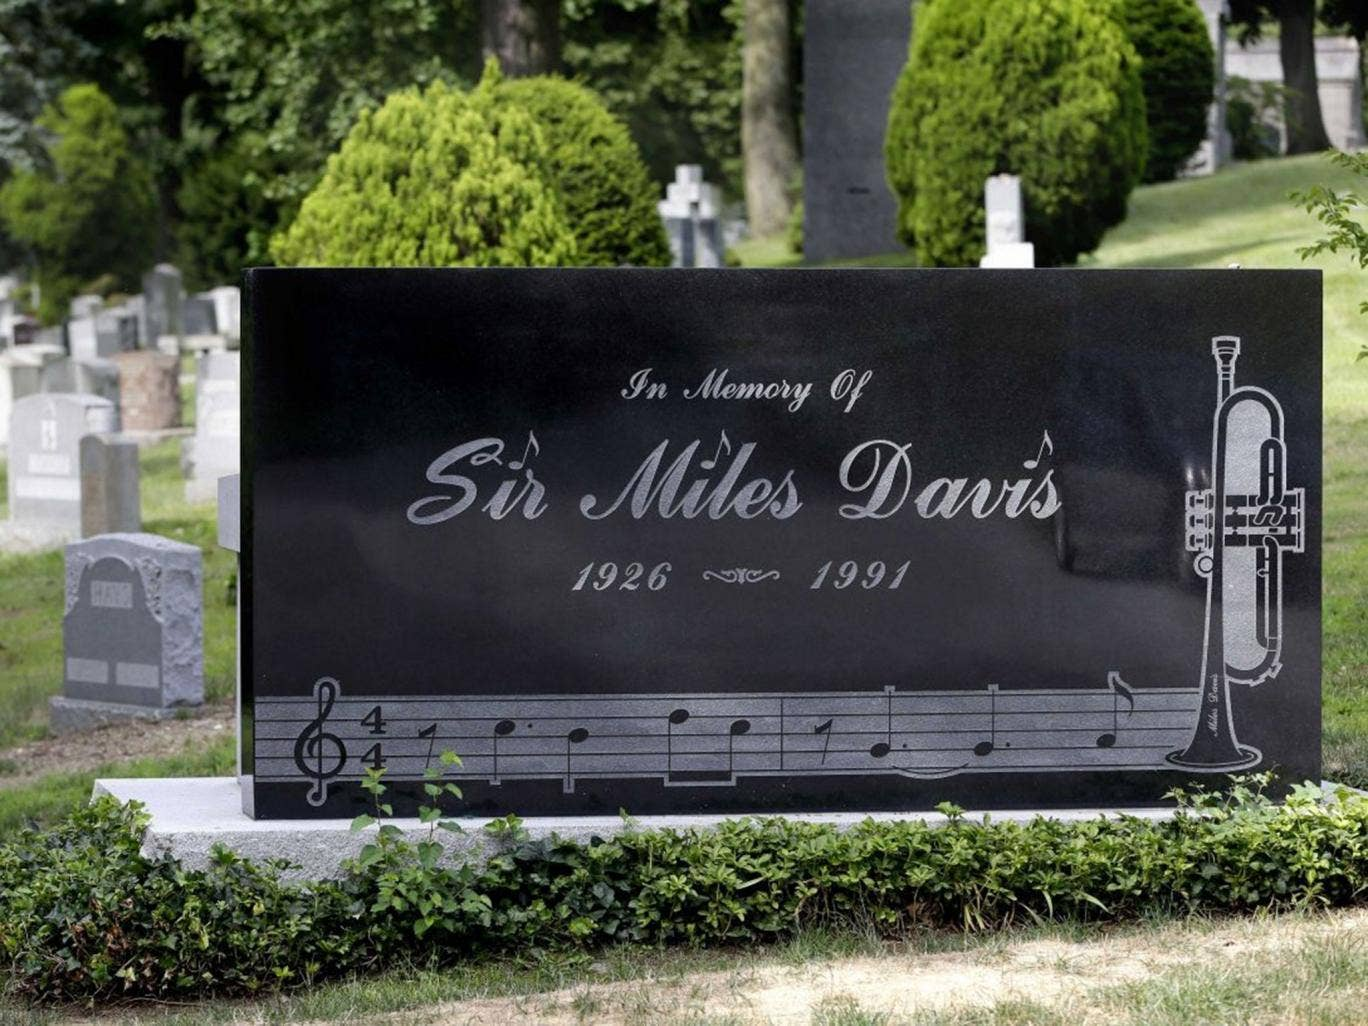 The headstone of jazz great Miles Davis at Woodlawn Cemetery in New York